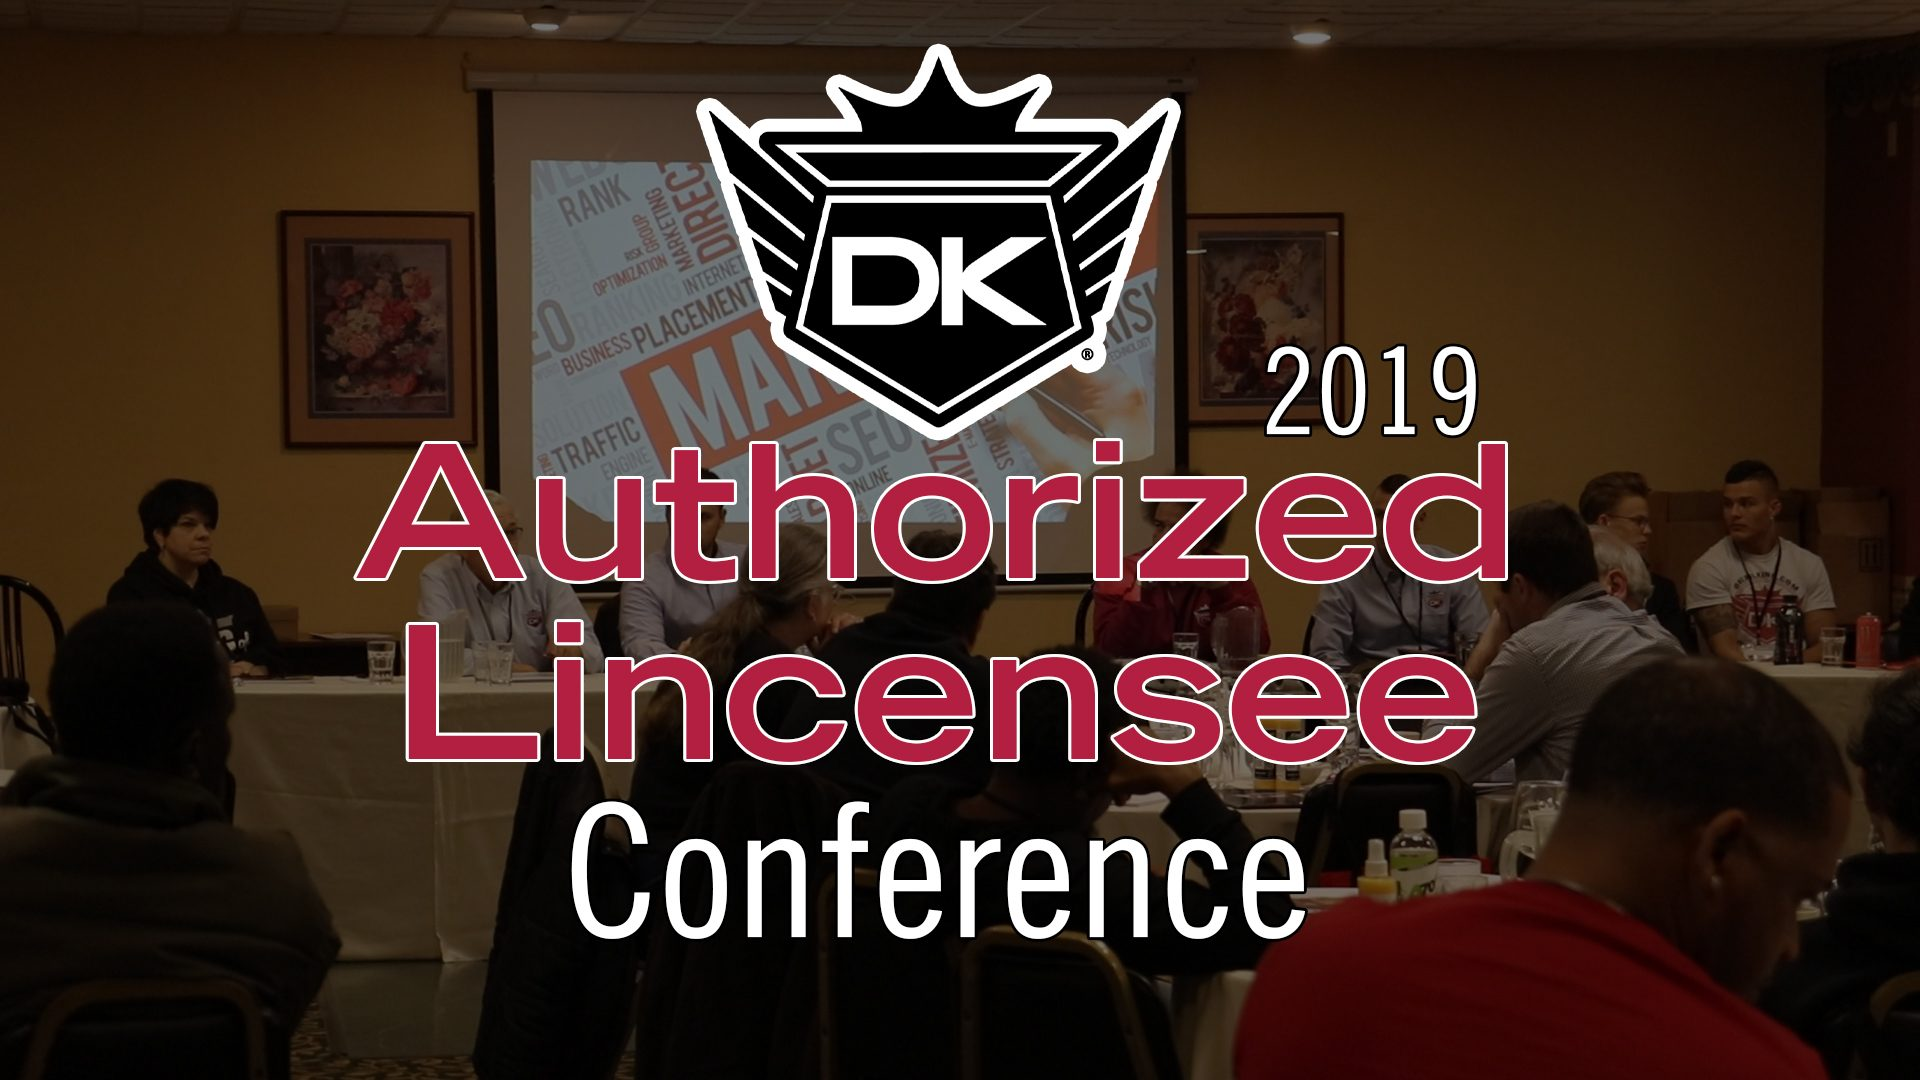 2019 Authorized Licensee Conference